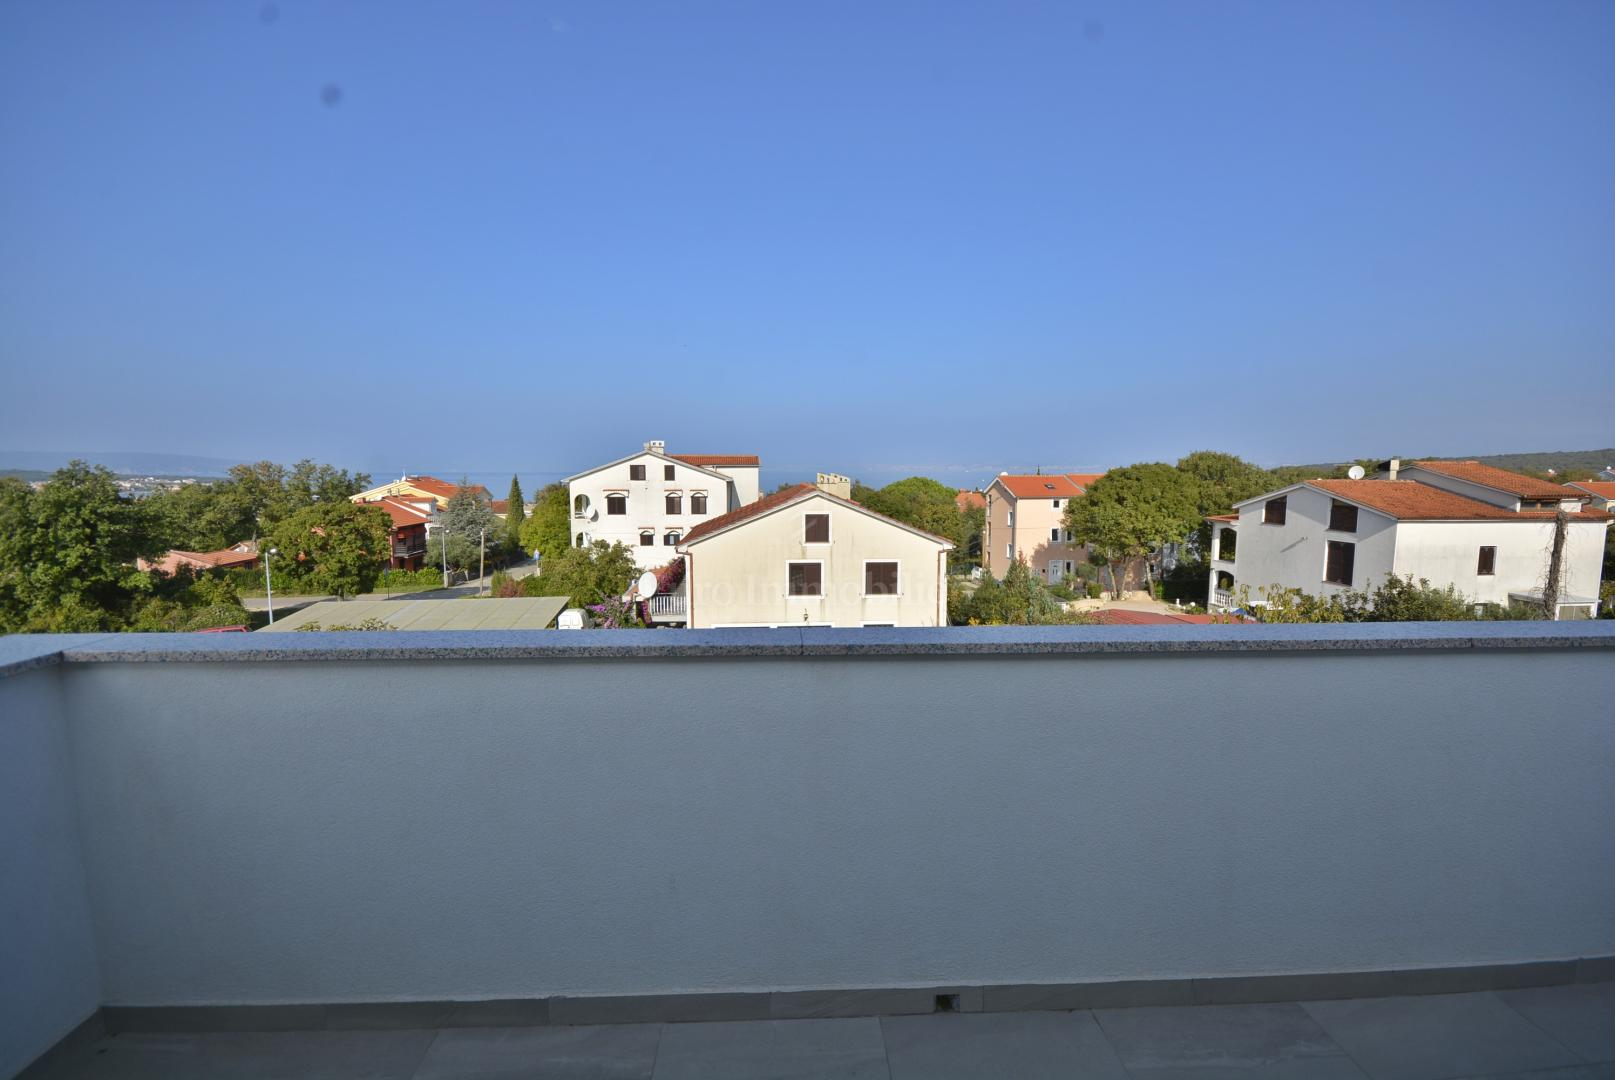 Detached house with swimming pool in function of tourist rent